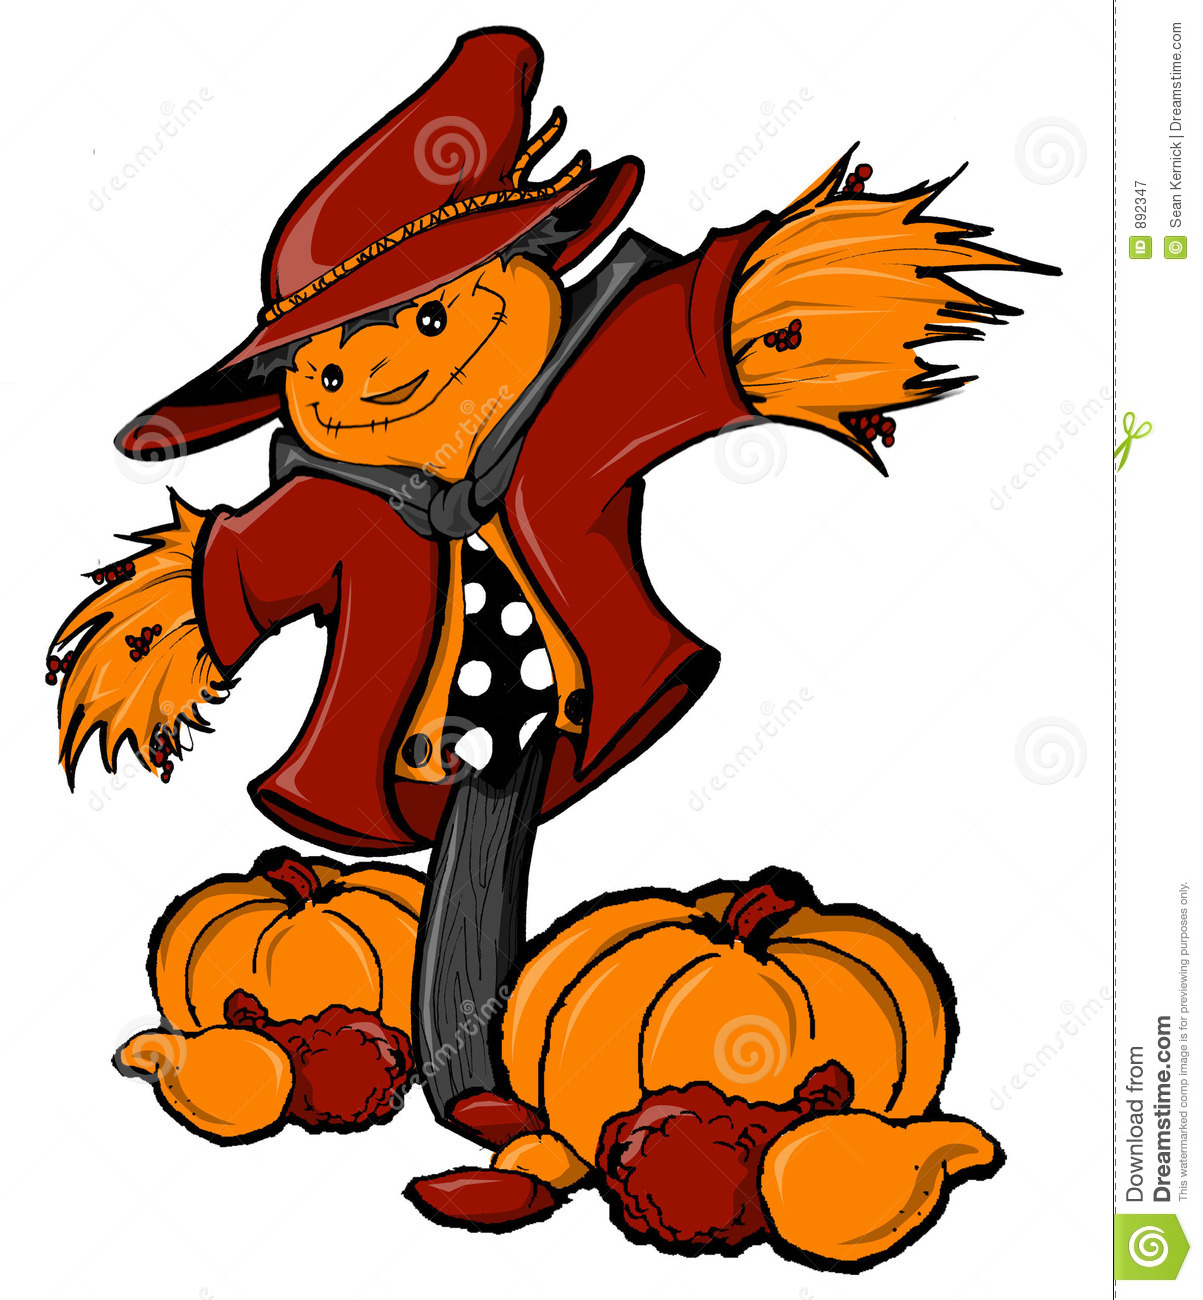 Thanksgiving Scarecrow Royalty Free Stock Photography - Image: 892347